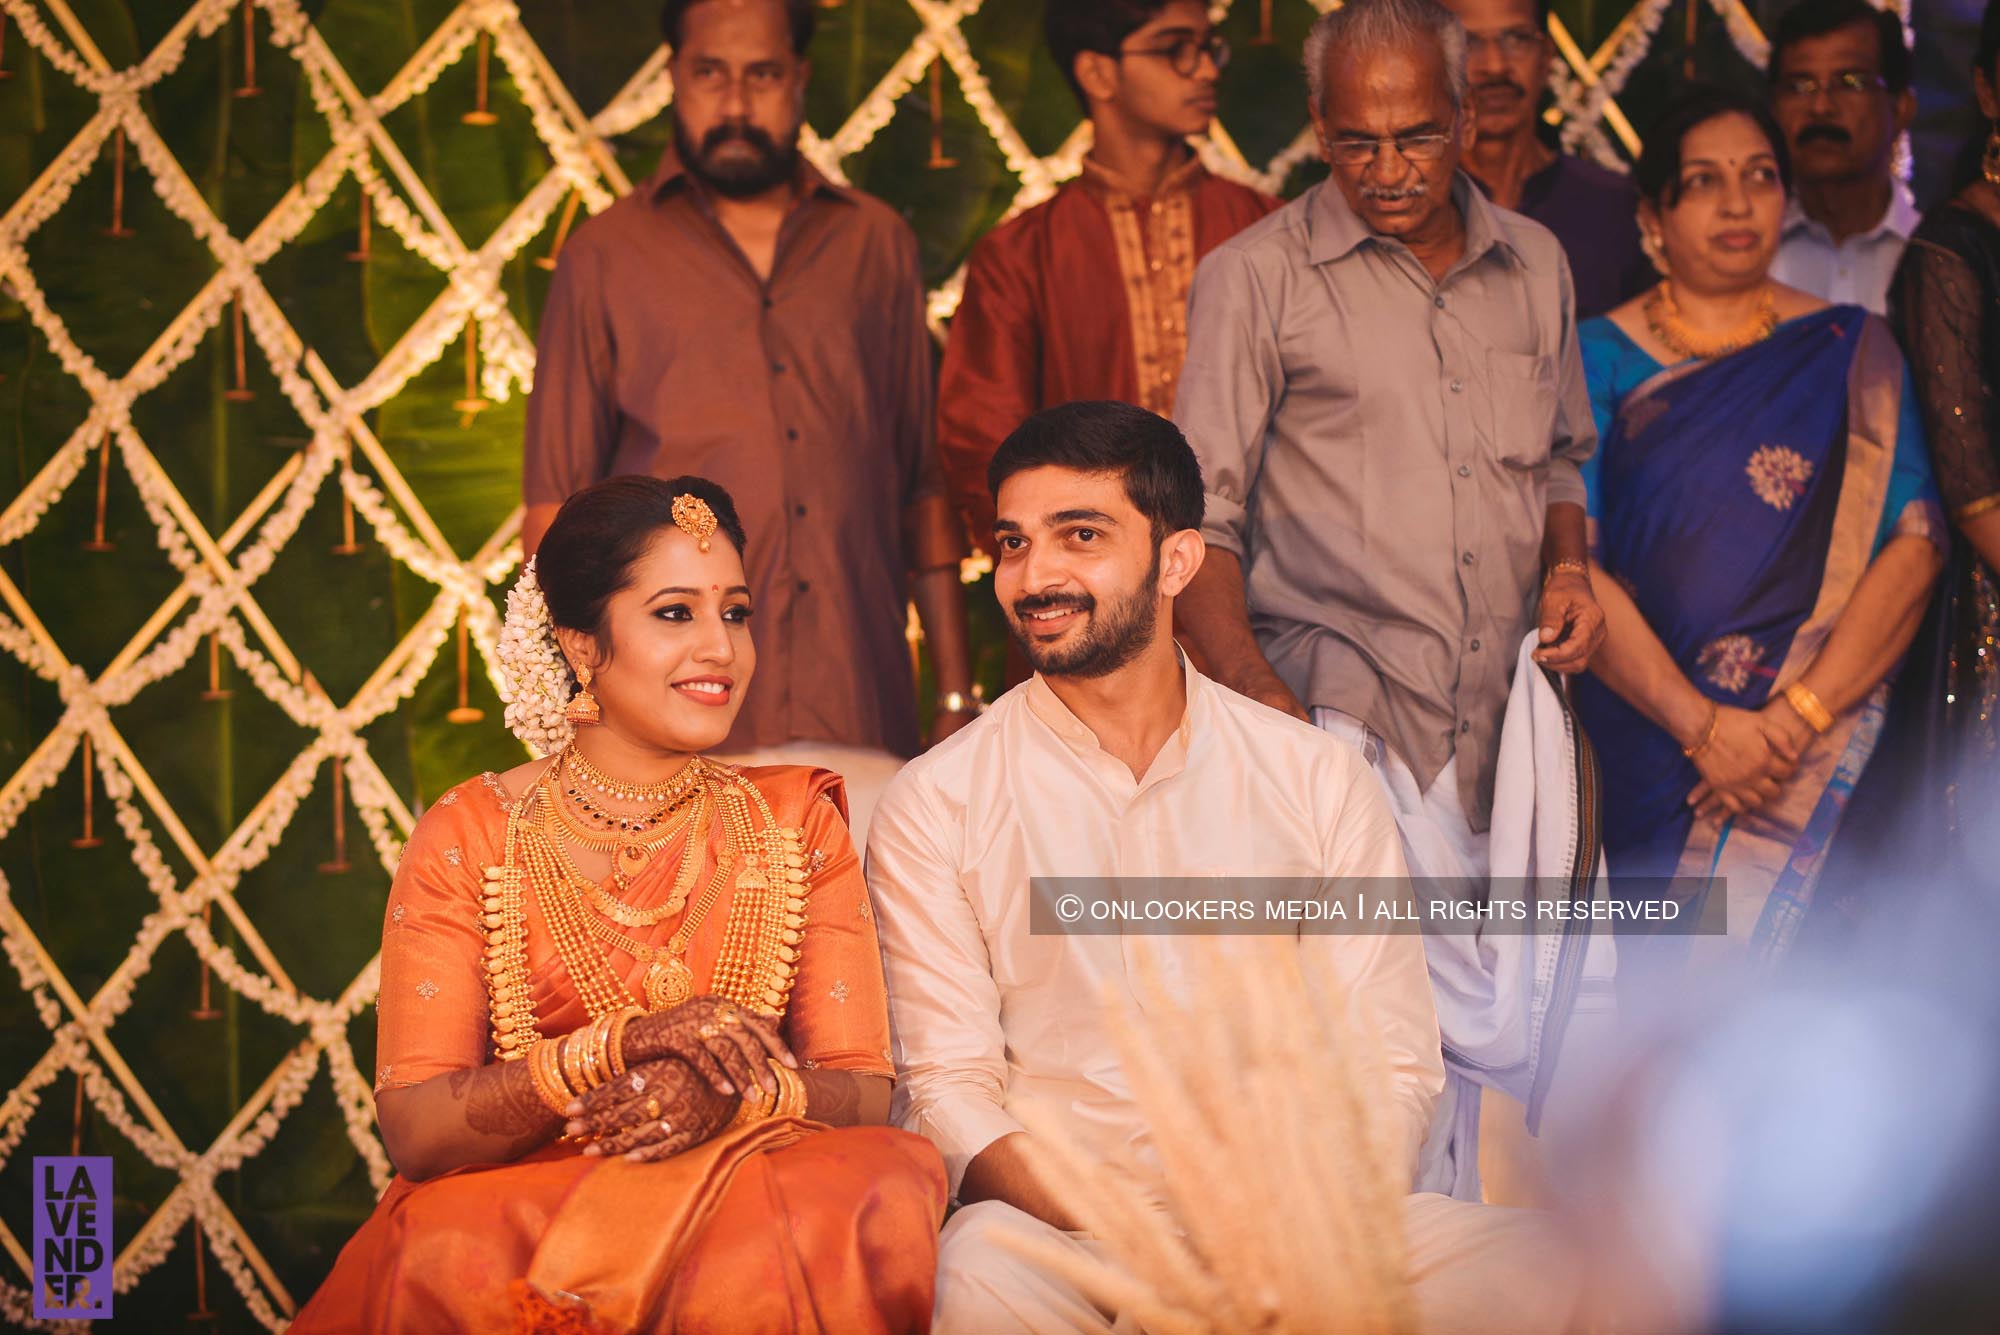 http://onlookersmedia.in/wp-content/uploads/2018/05/sreejith-vijay-wedding-stills-images-41.jpg